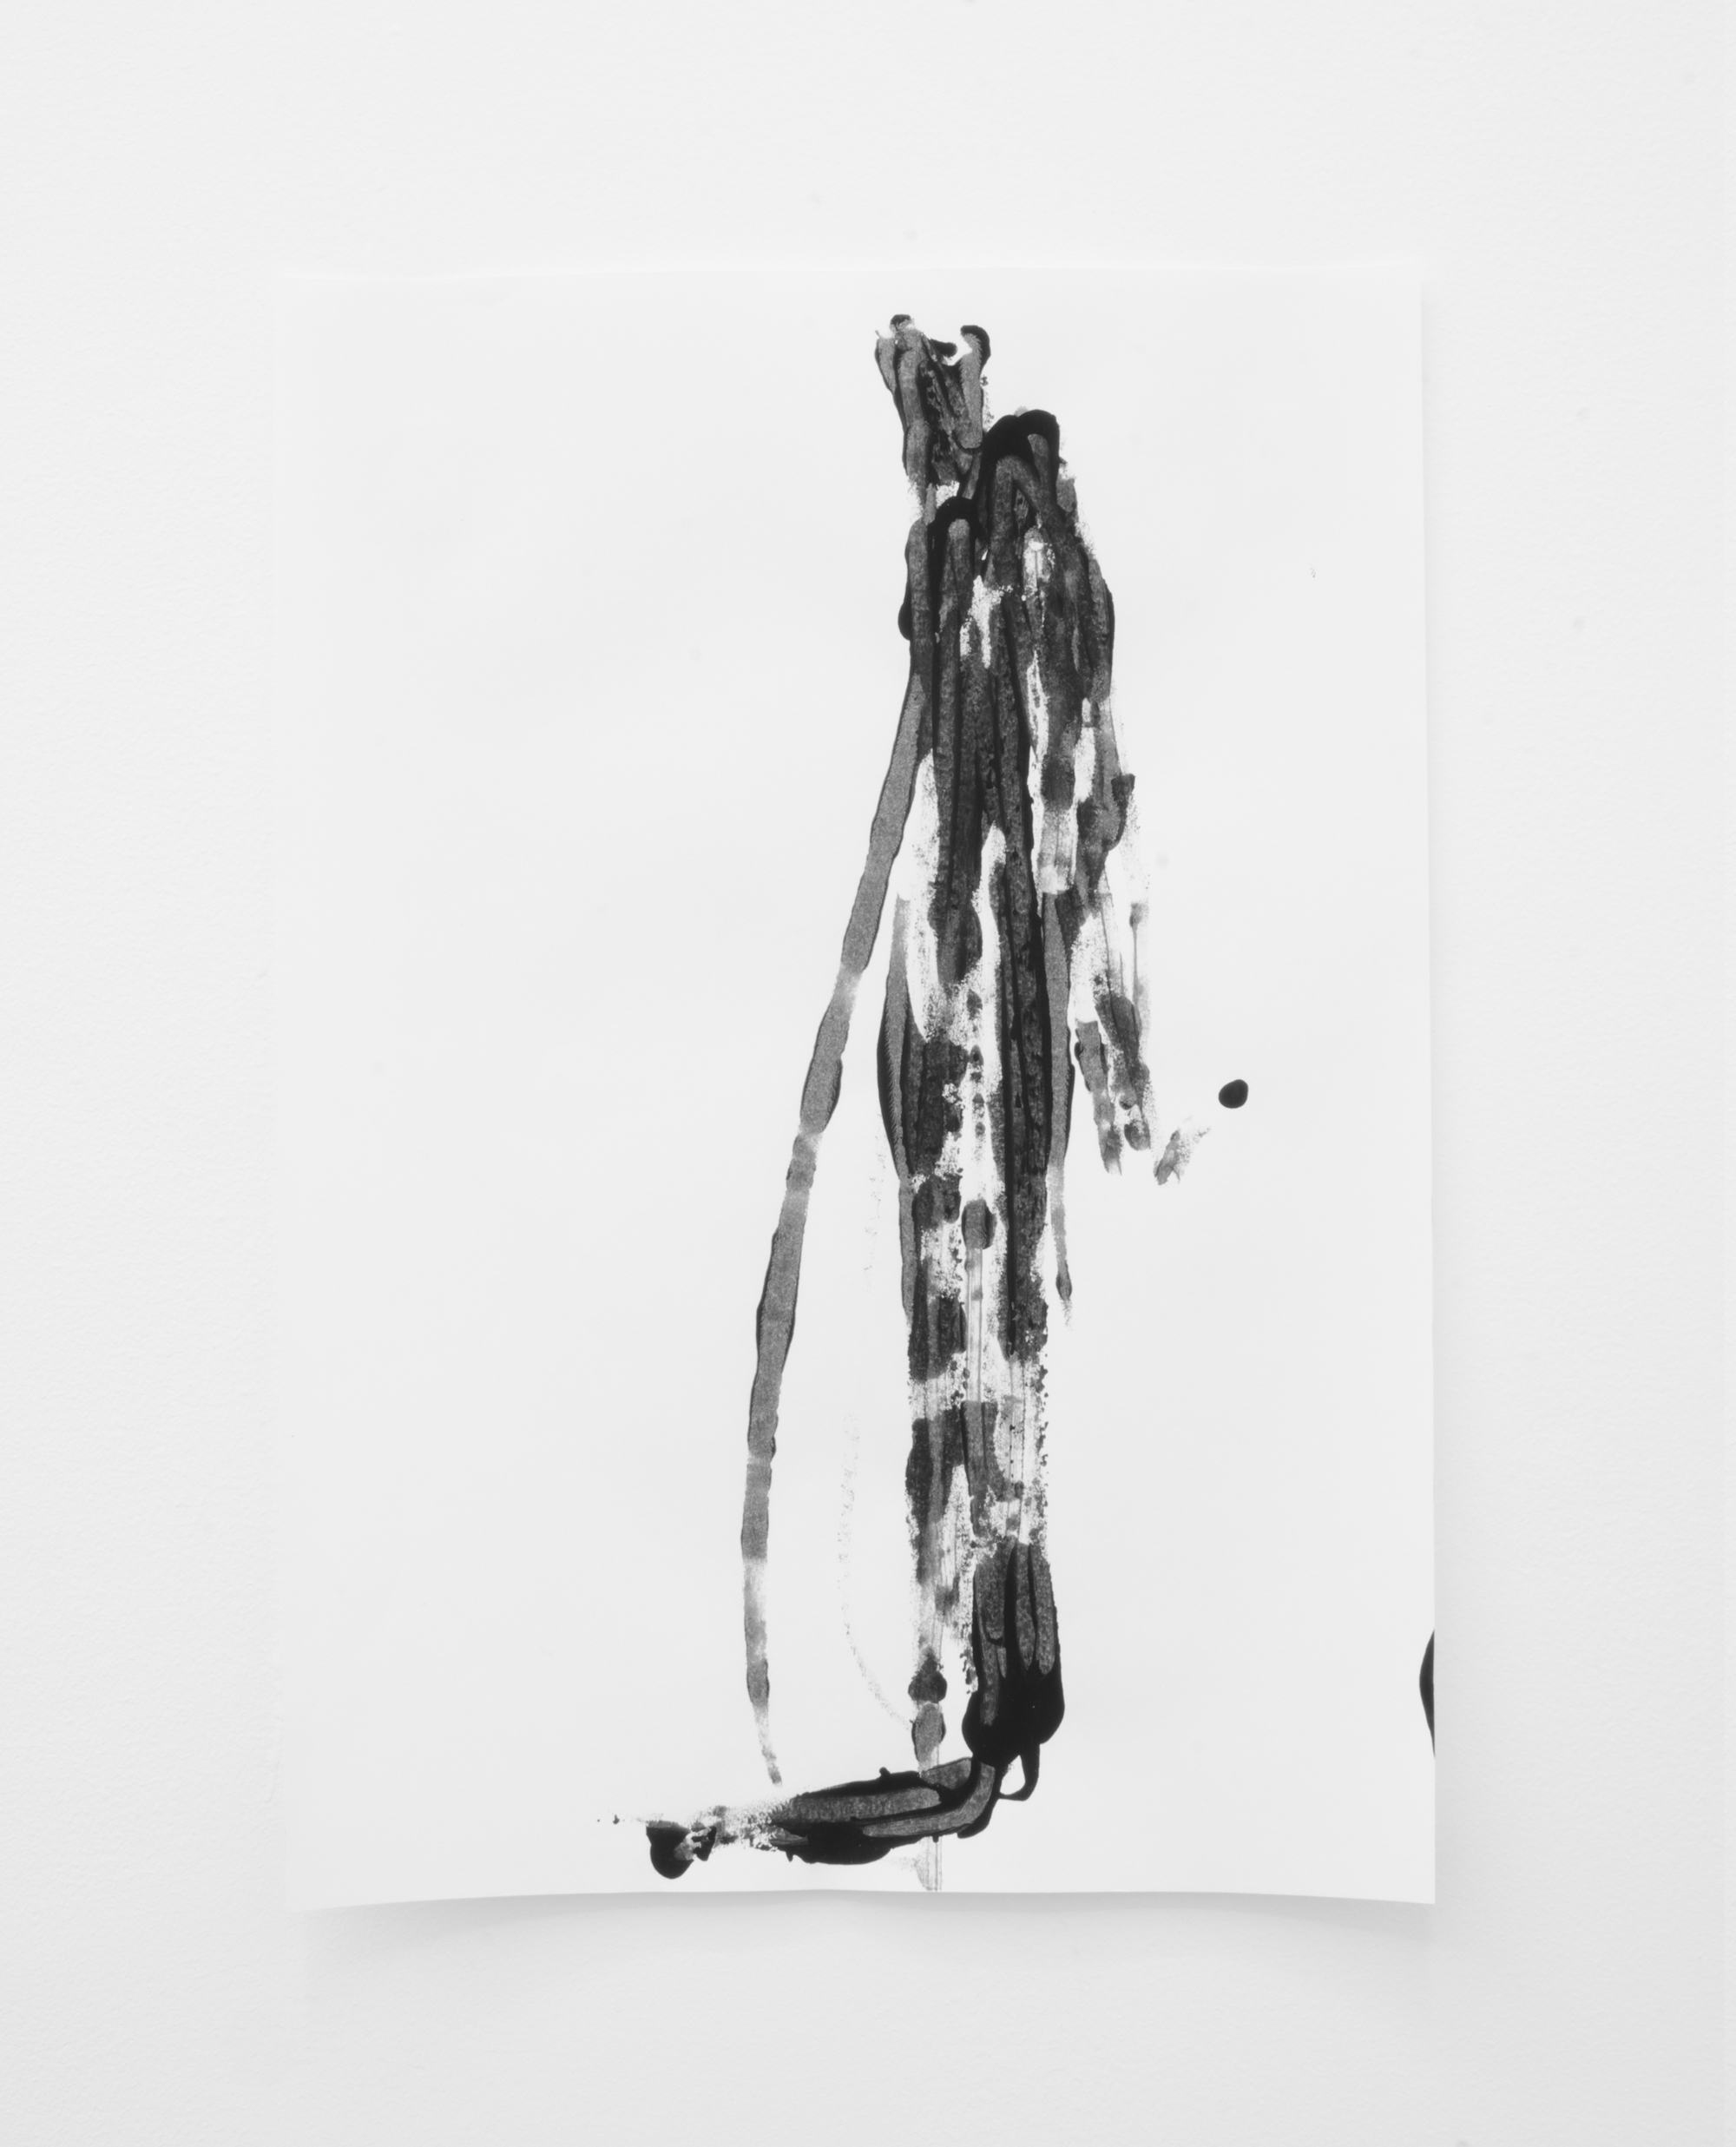 Deo-Drawing (Portrait 3)  2017 Printing ink on paper 29.7 x 21 cm